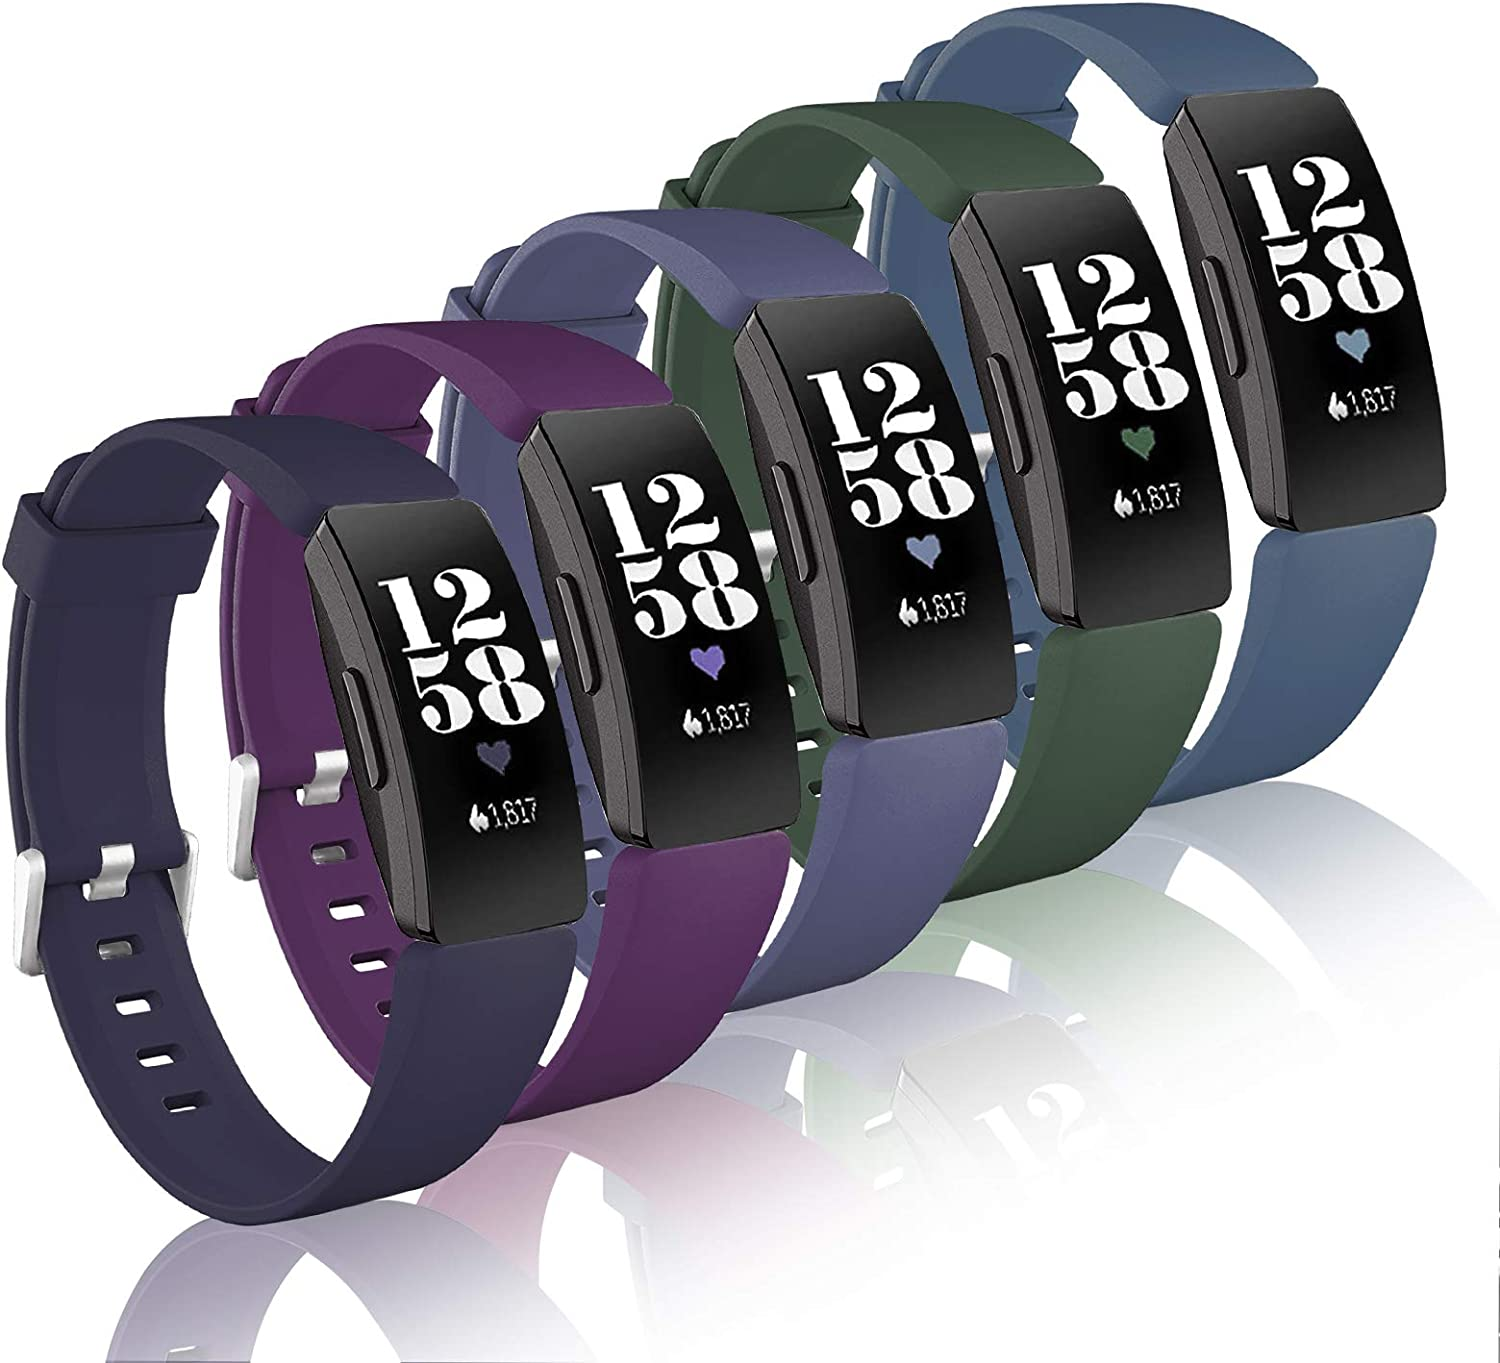 Vanet Bands Compatible with Fitbit Inspire/Inspire 2/Inspire HR/Ace 2, 5 Packs Soft Silicone Inspire HR Bands for Women Men, Small Large